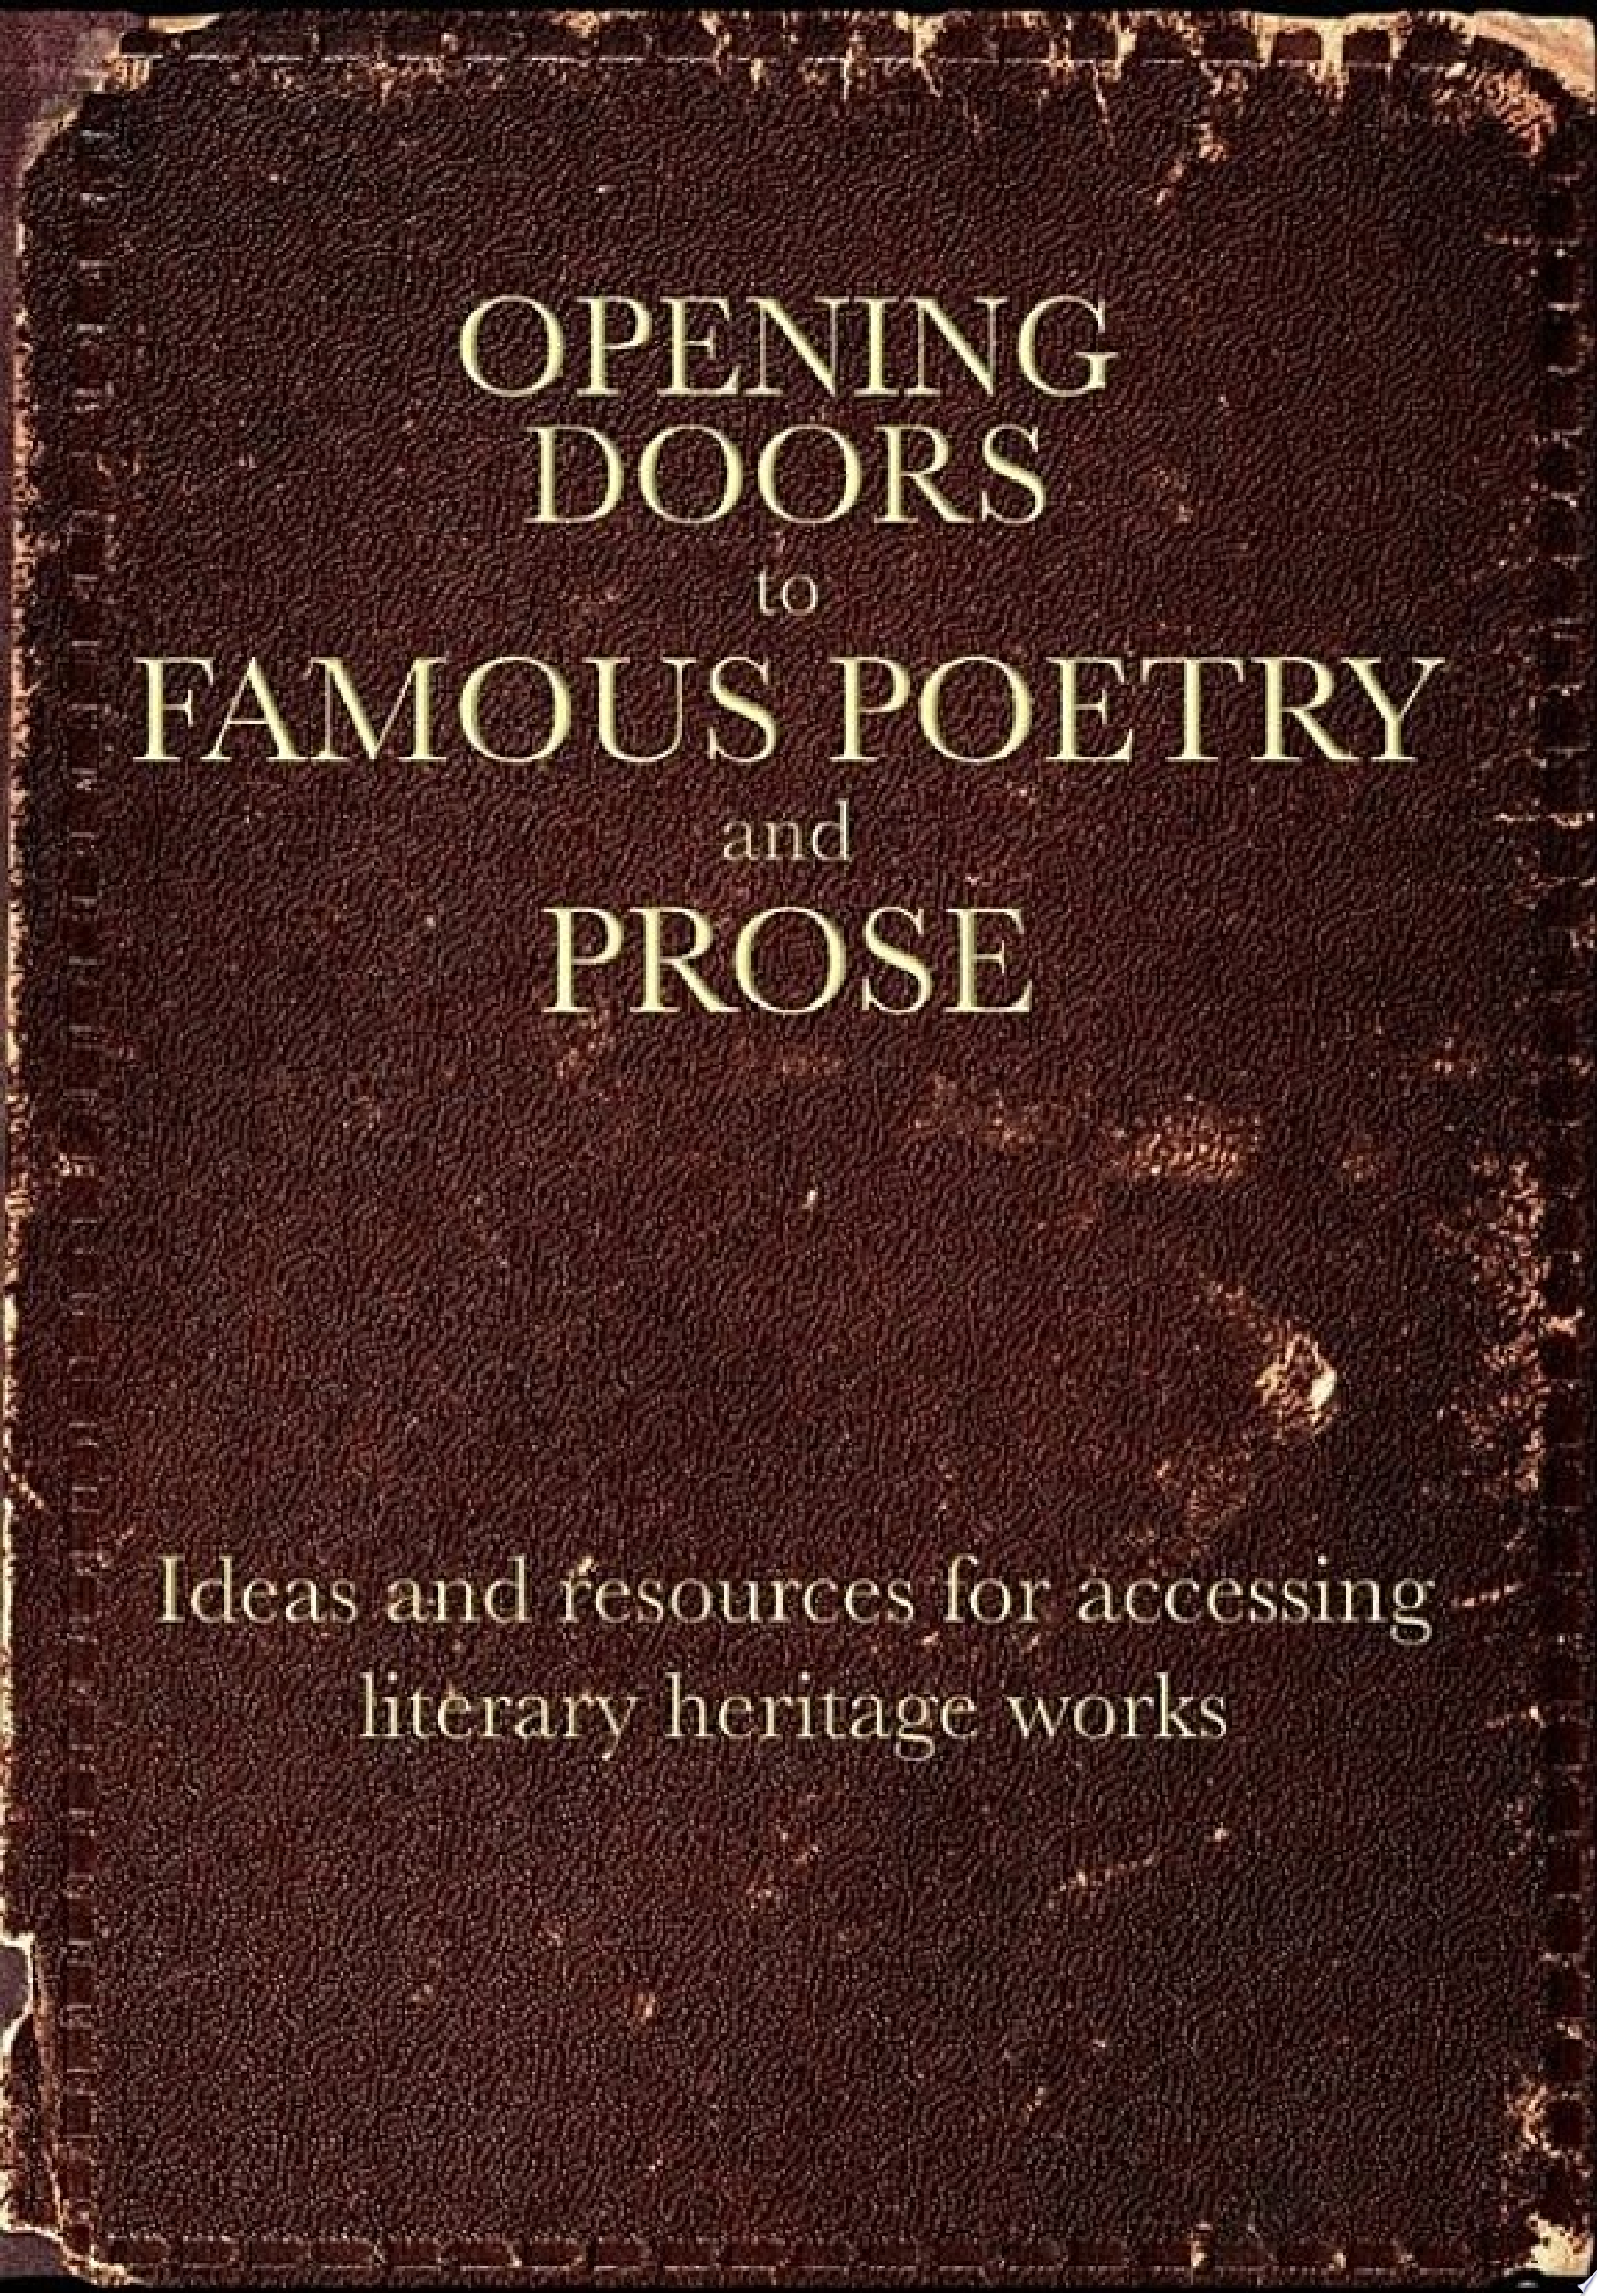 Opening Doors to Famous Poetry and Prose